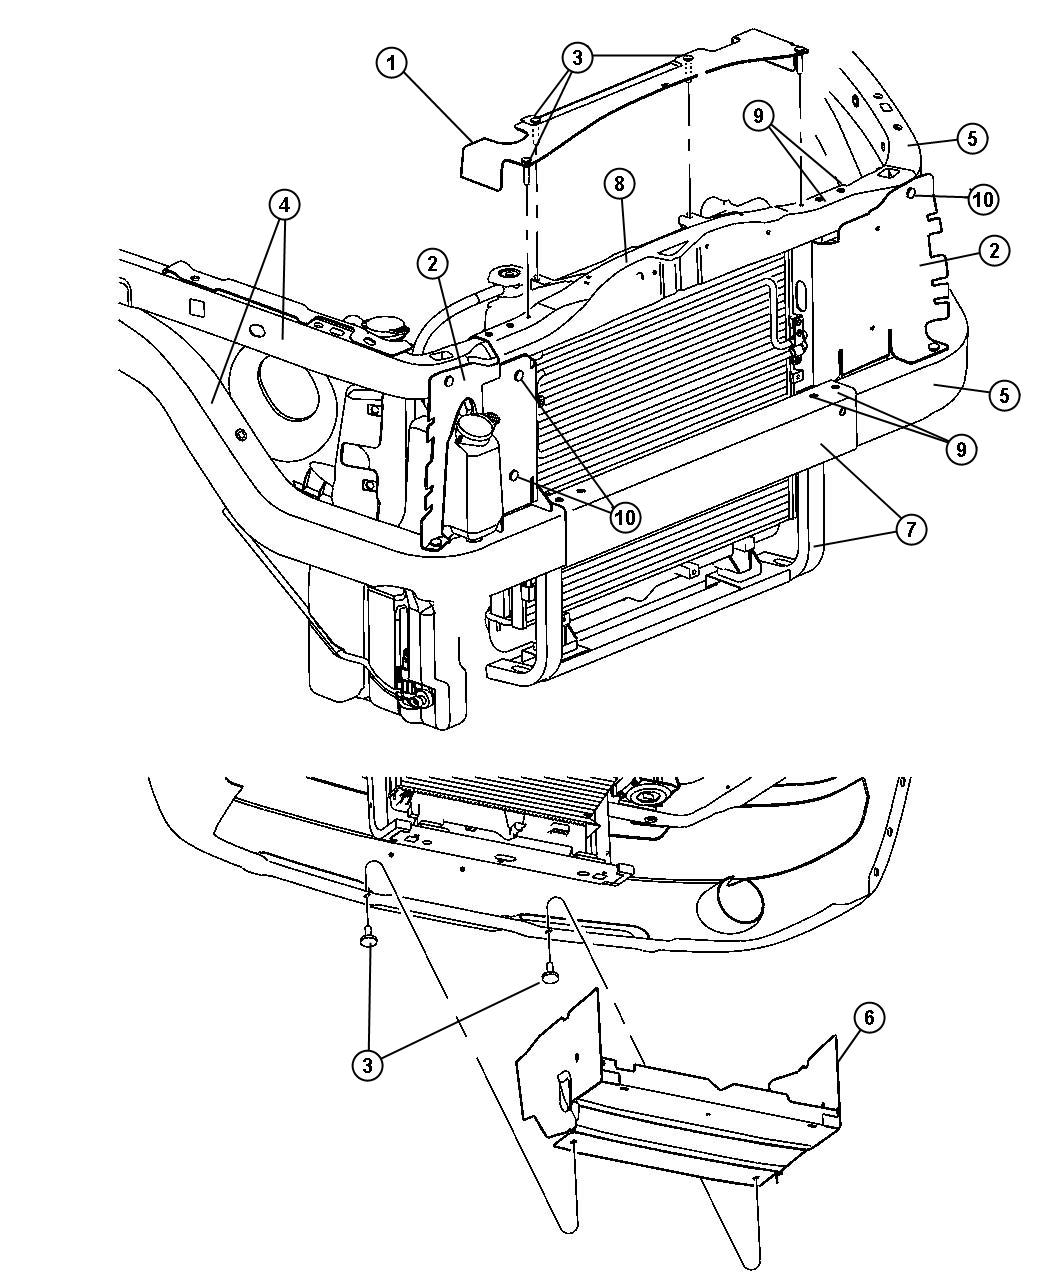 [2003 Dodge Dakota Transmission Diagram For A Removal